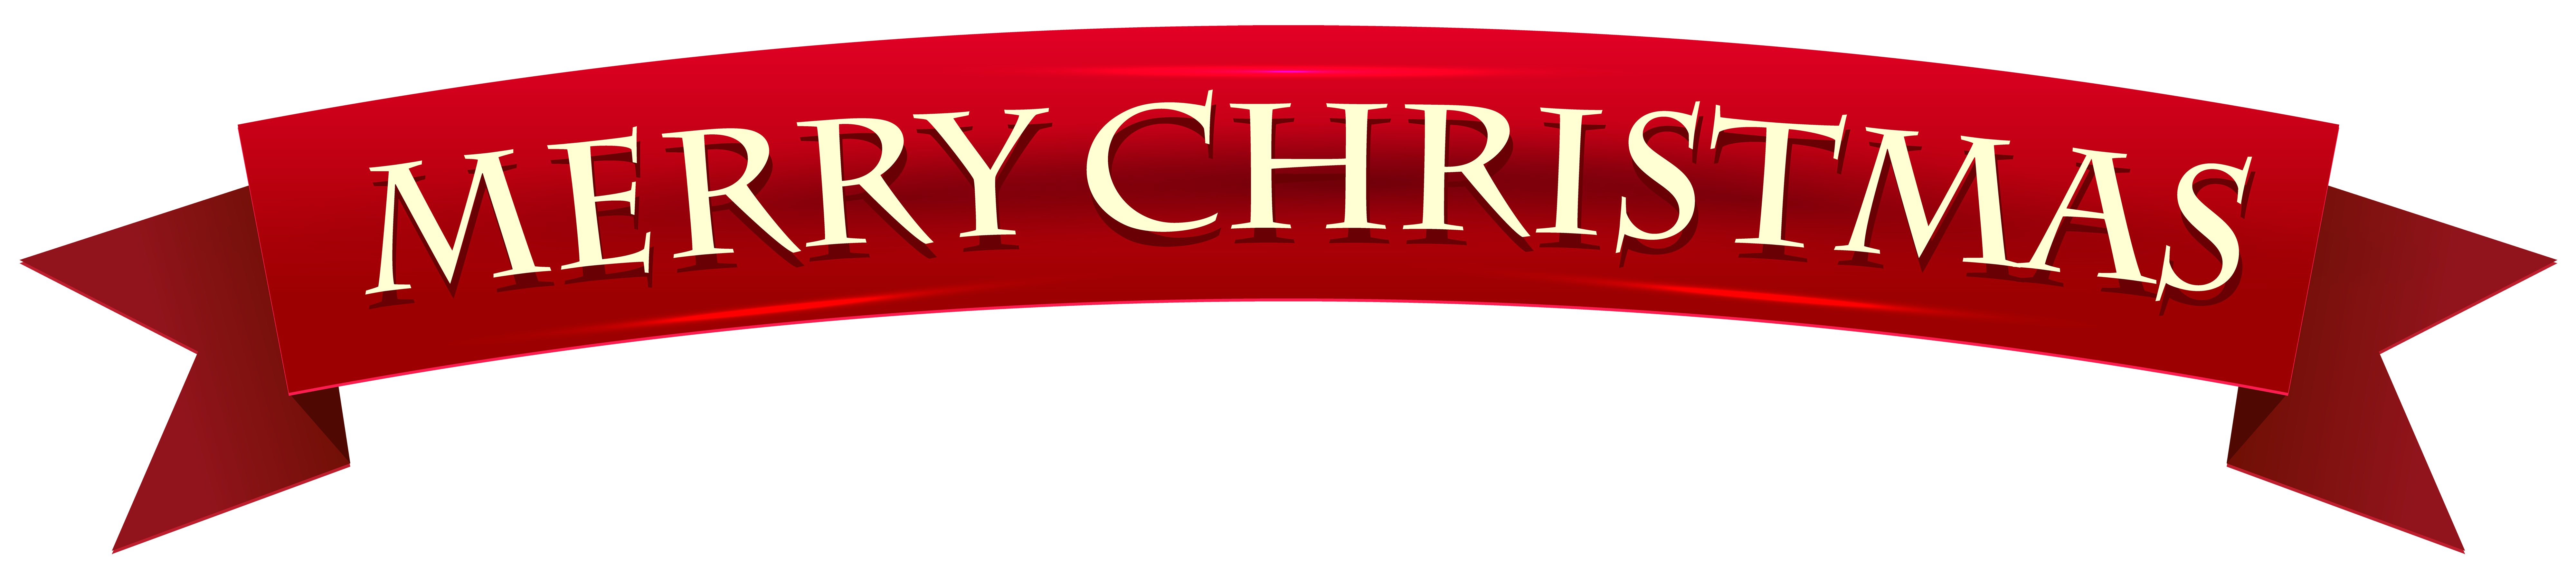 Merry christmas banner png. Transparent clip art image